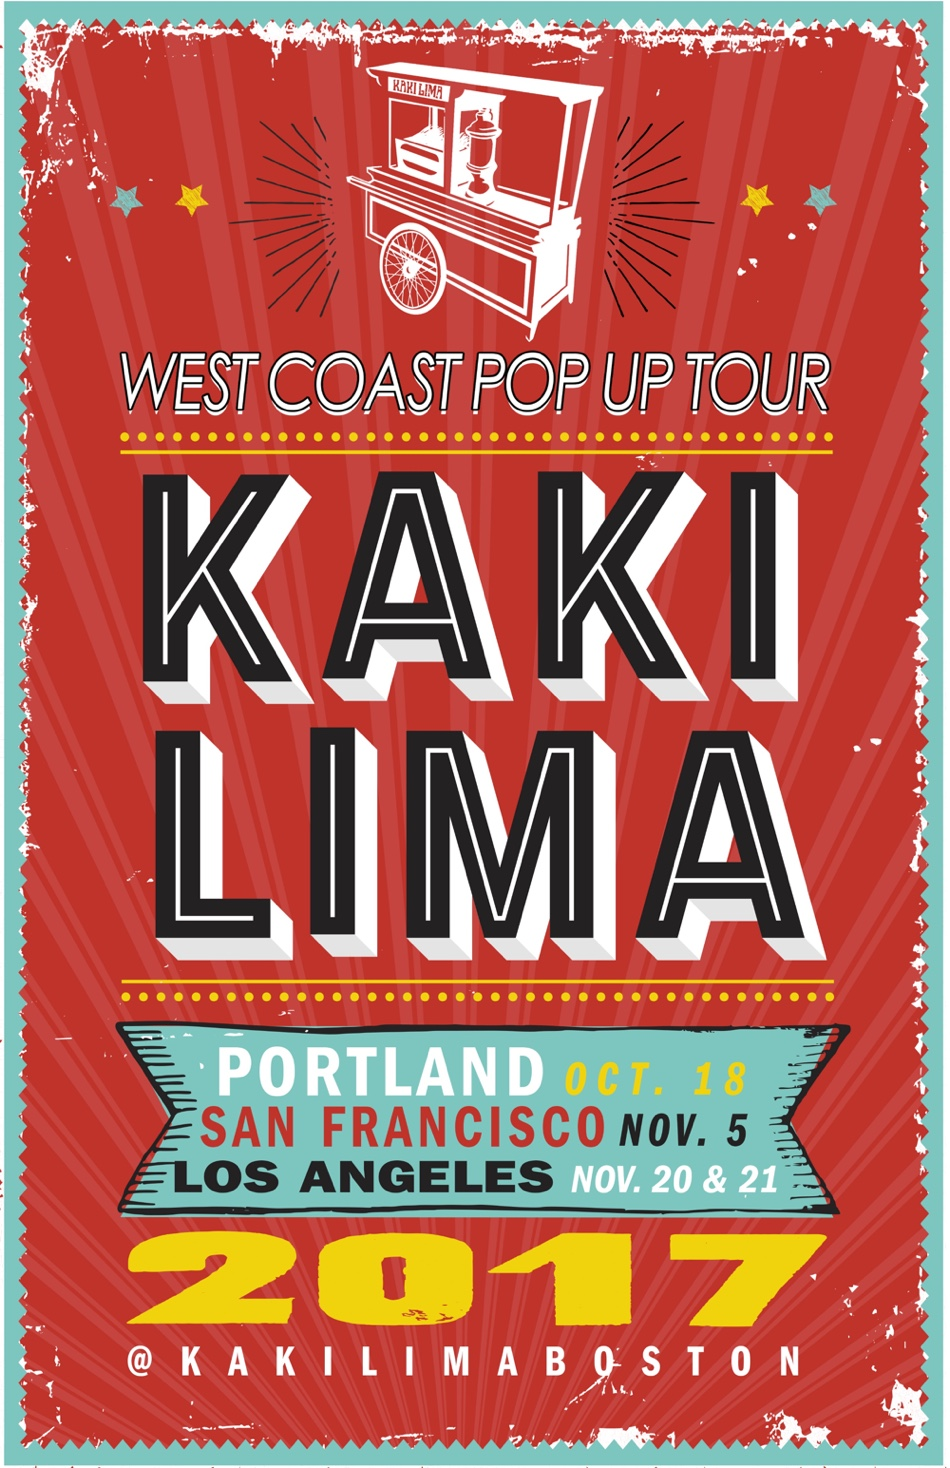 West Coast Pop Up Tour Poster Lo-Res copy.jpg